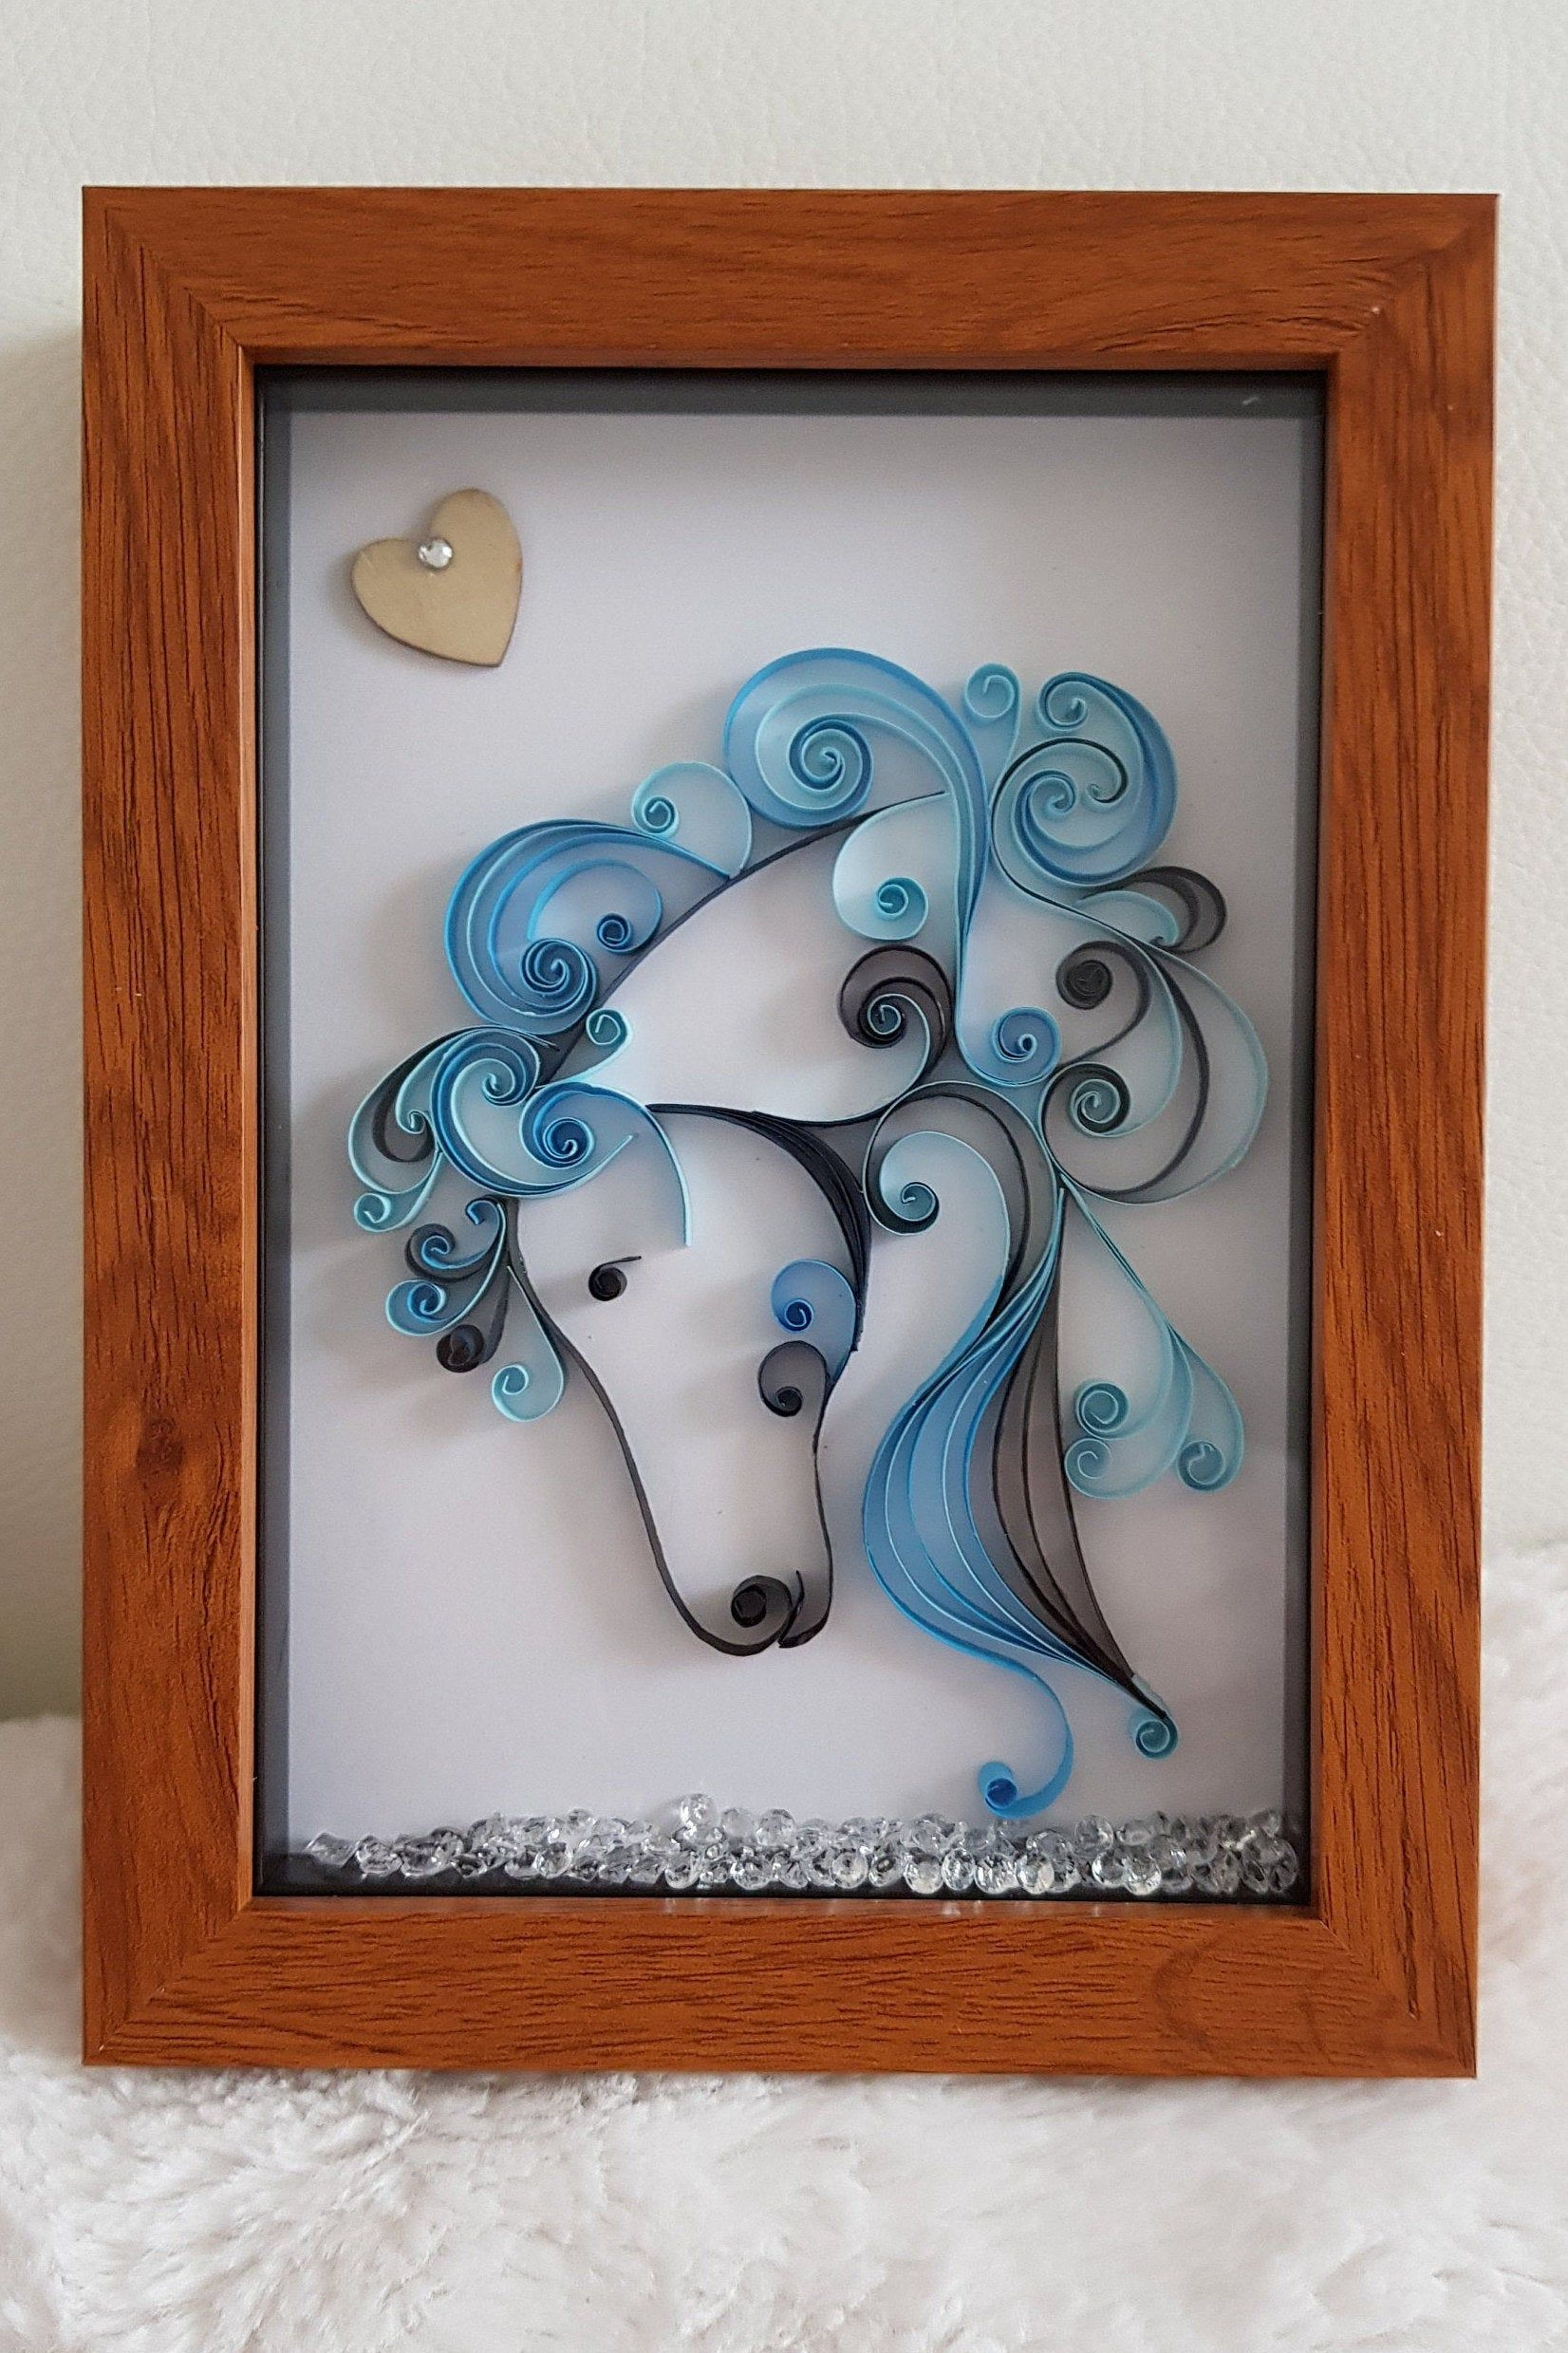 Horse head Quilled Art handmade by modheartpix in the UK